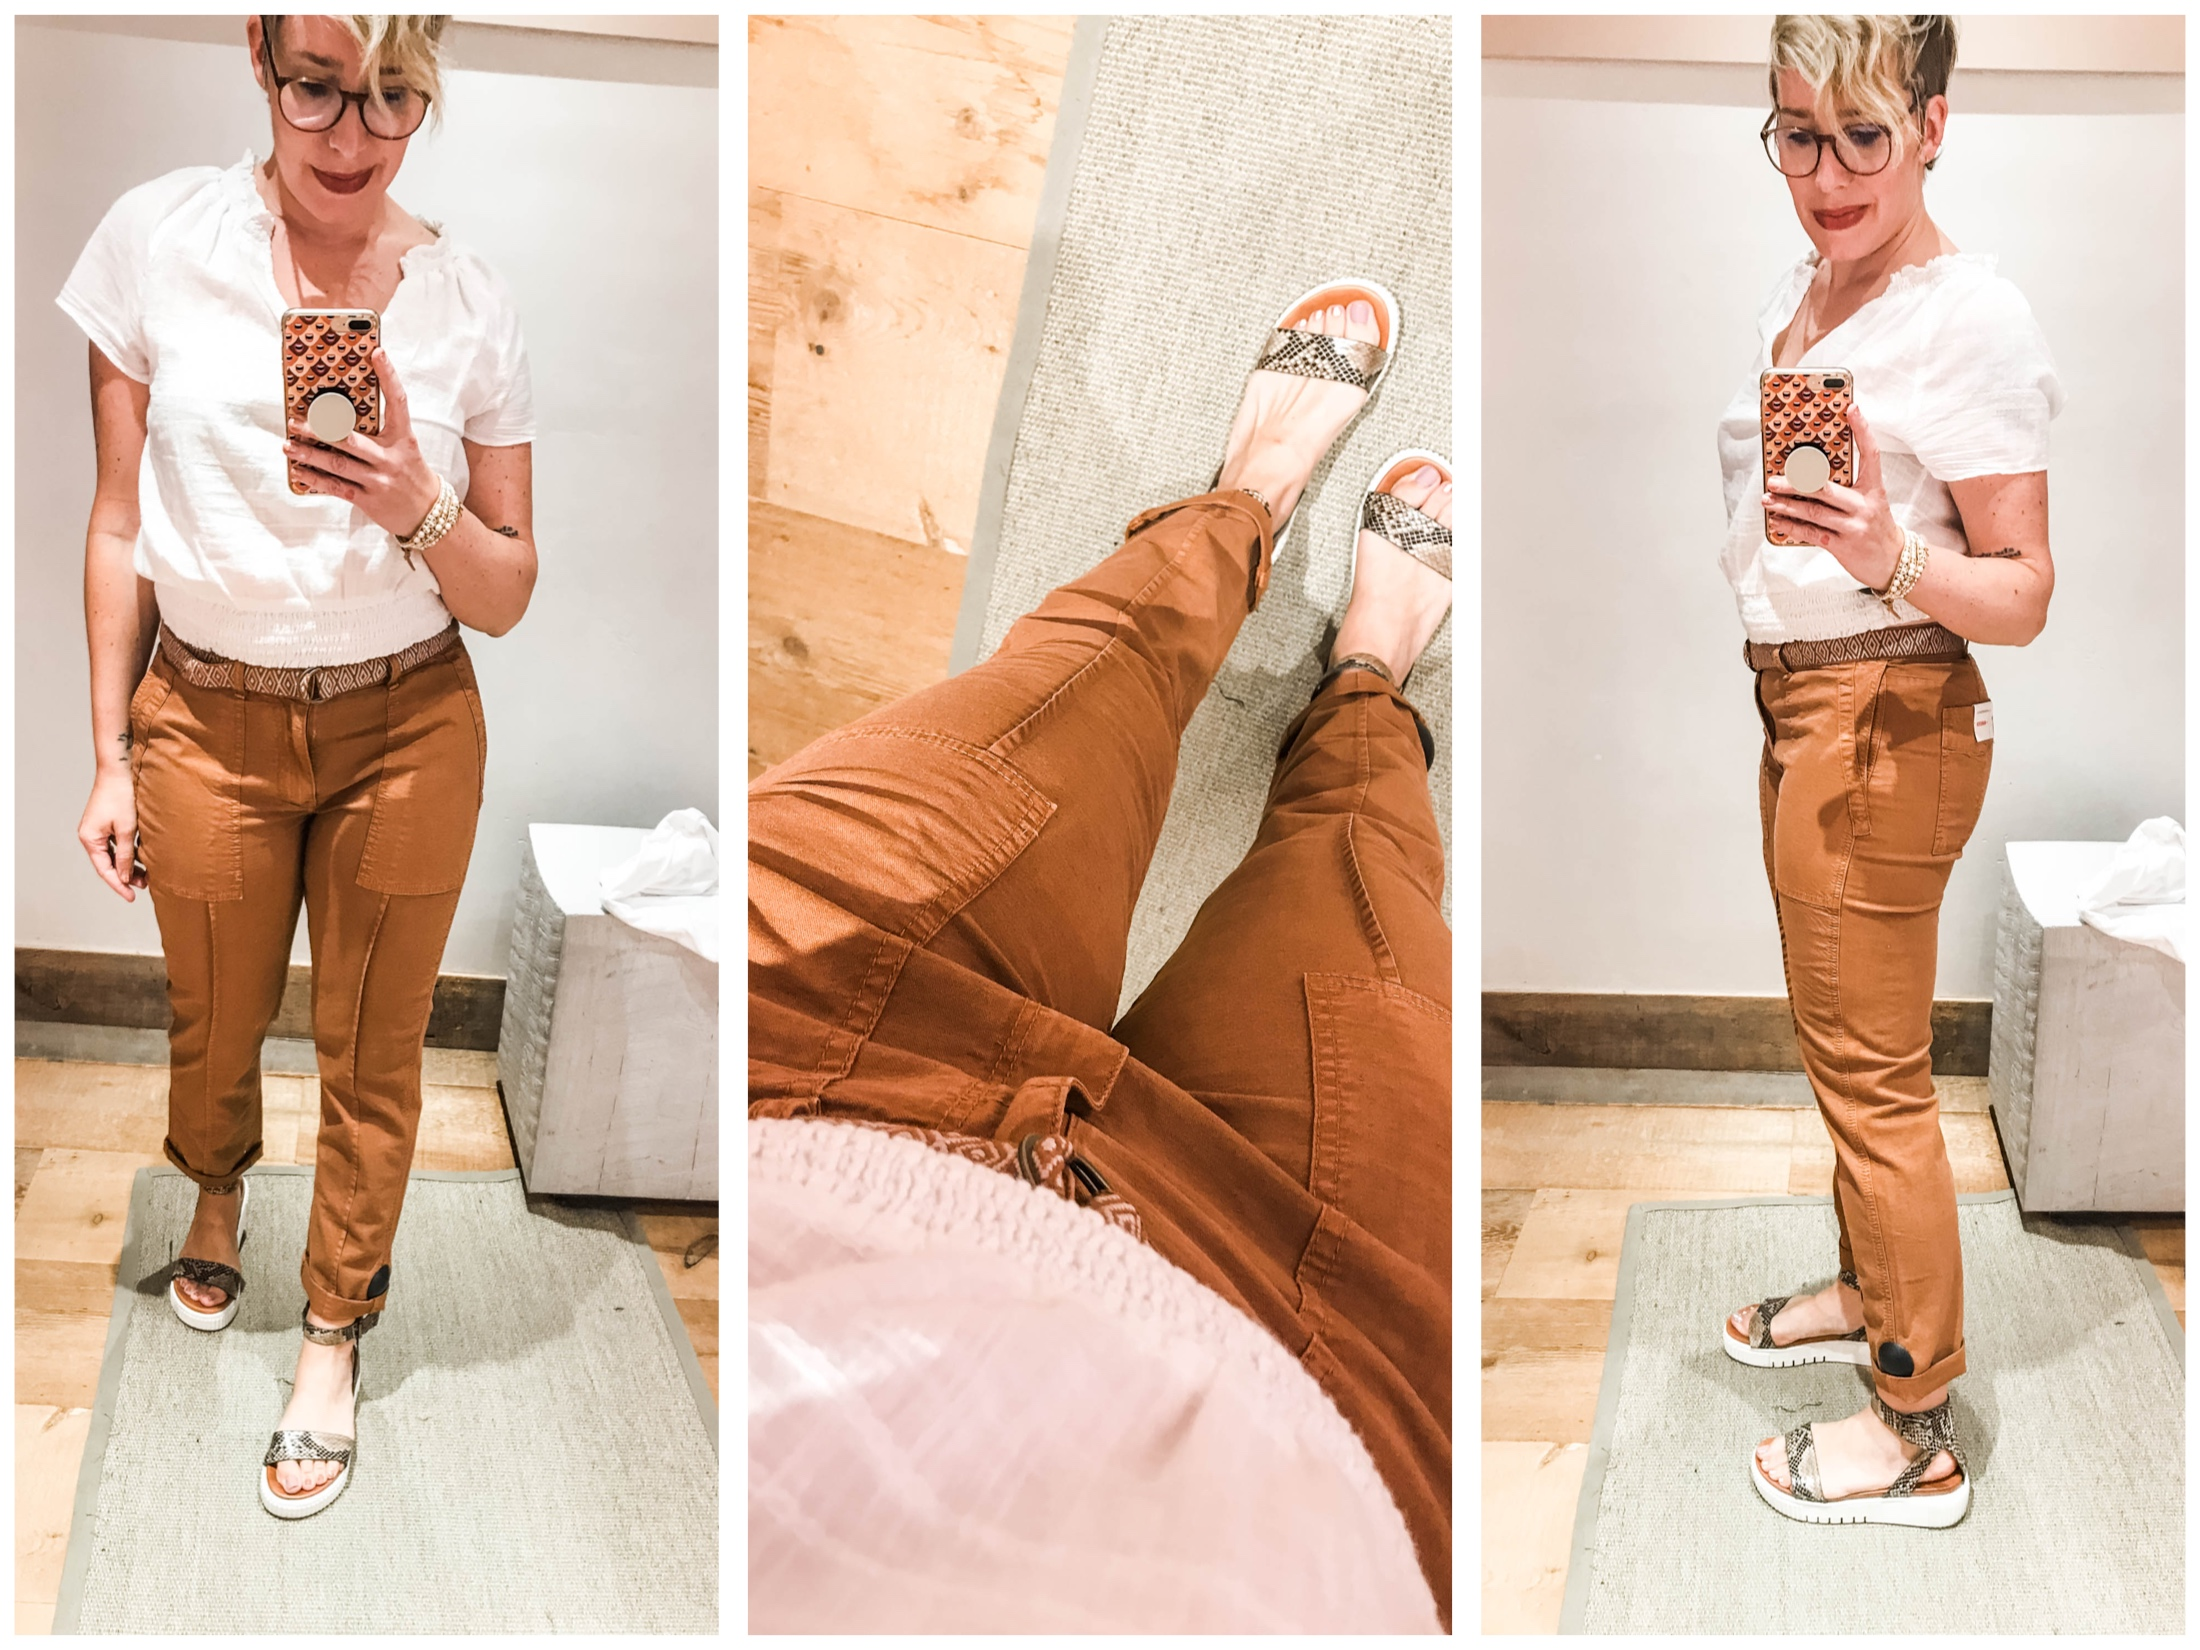 Cute summer outfits sans shorts? We're on it. Time for #dressingroomselfies at Anthropologie. Checking out lightweight, non-jeans pants — some with Tencel.